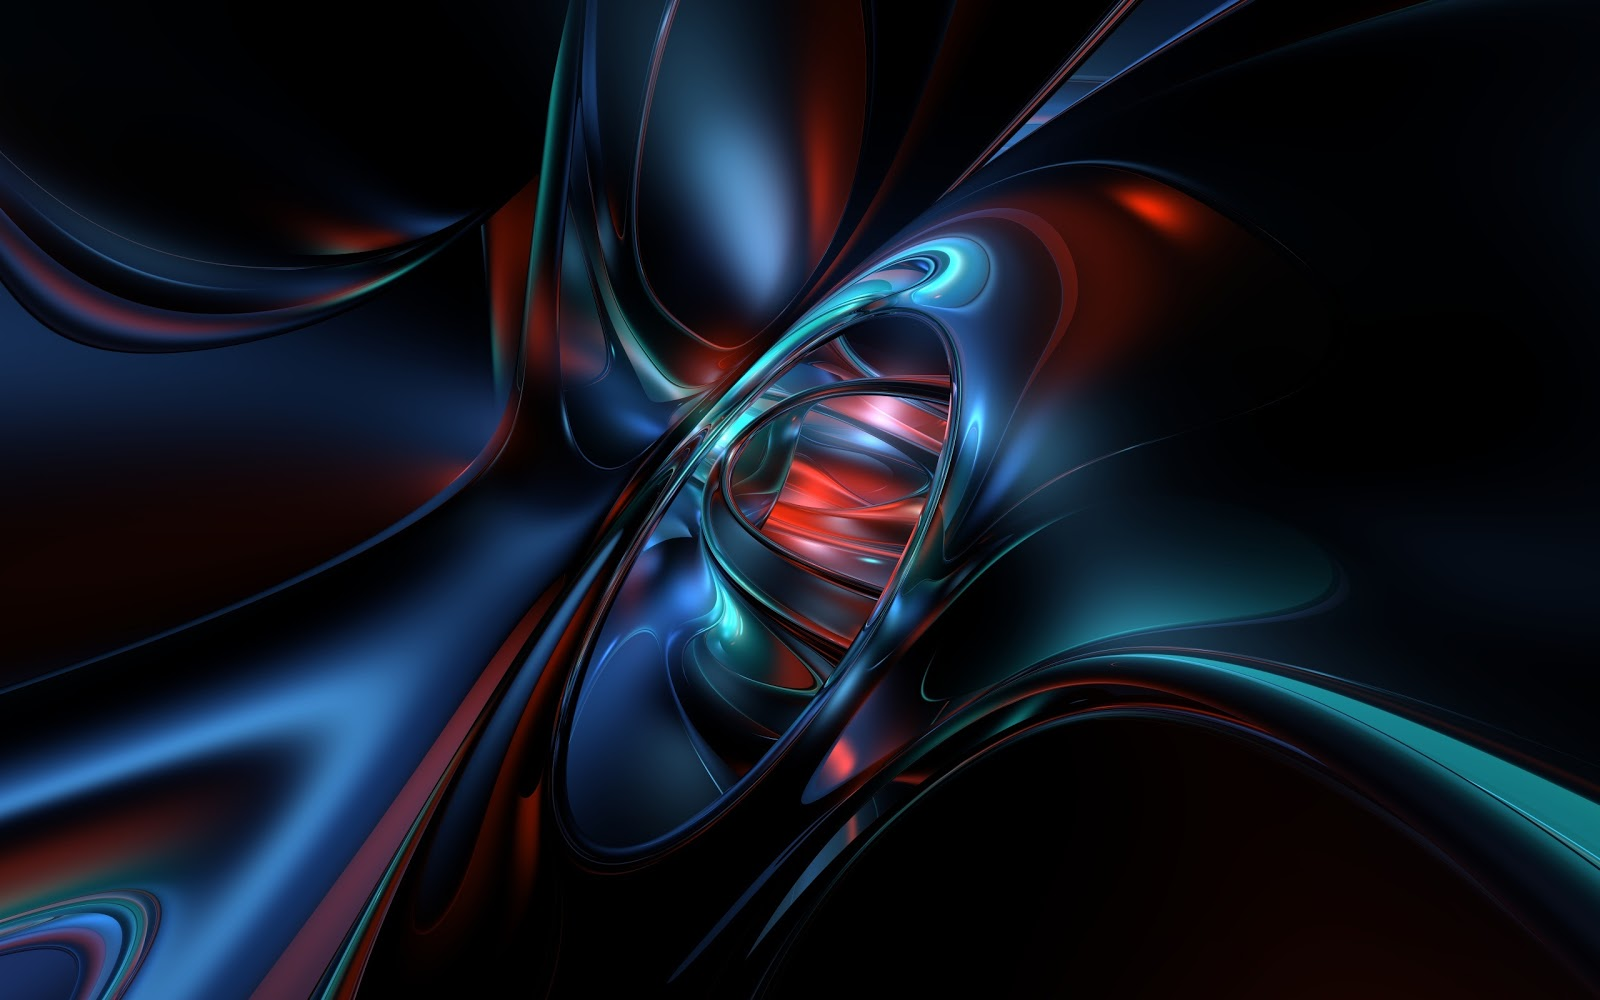 Windows 8 hd desktop wallpapers abstract wallpapers 13